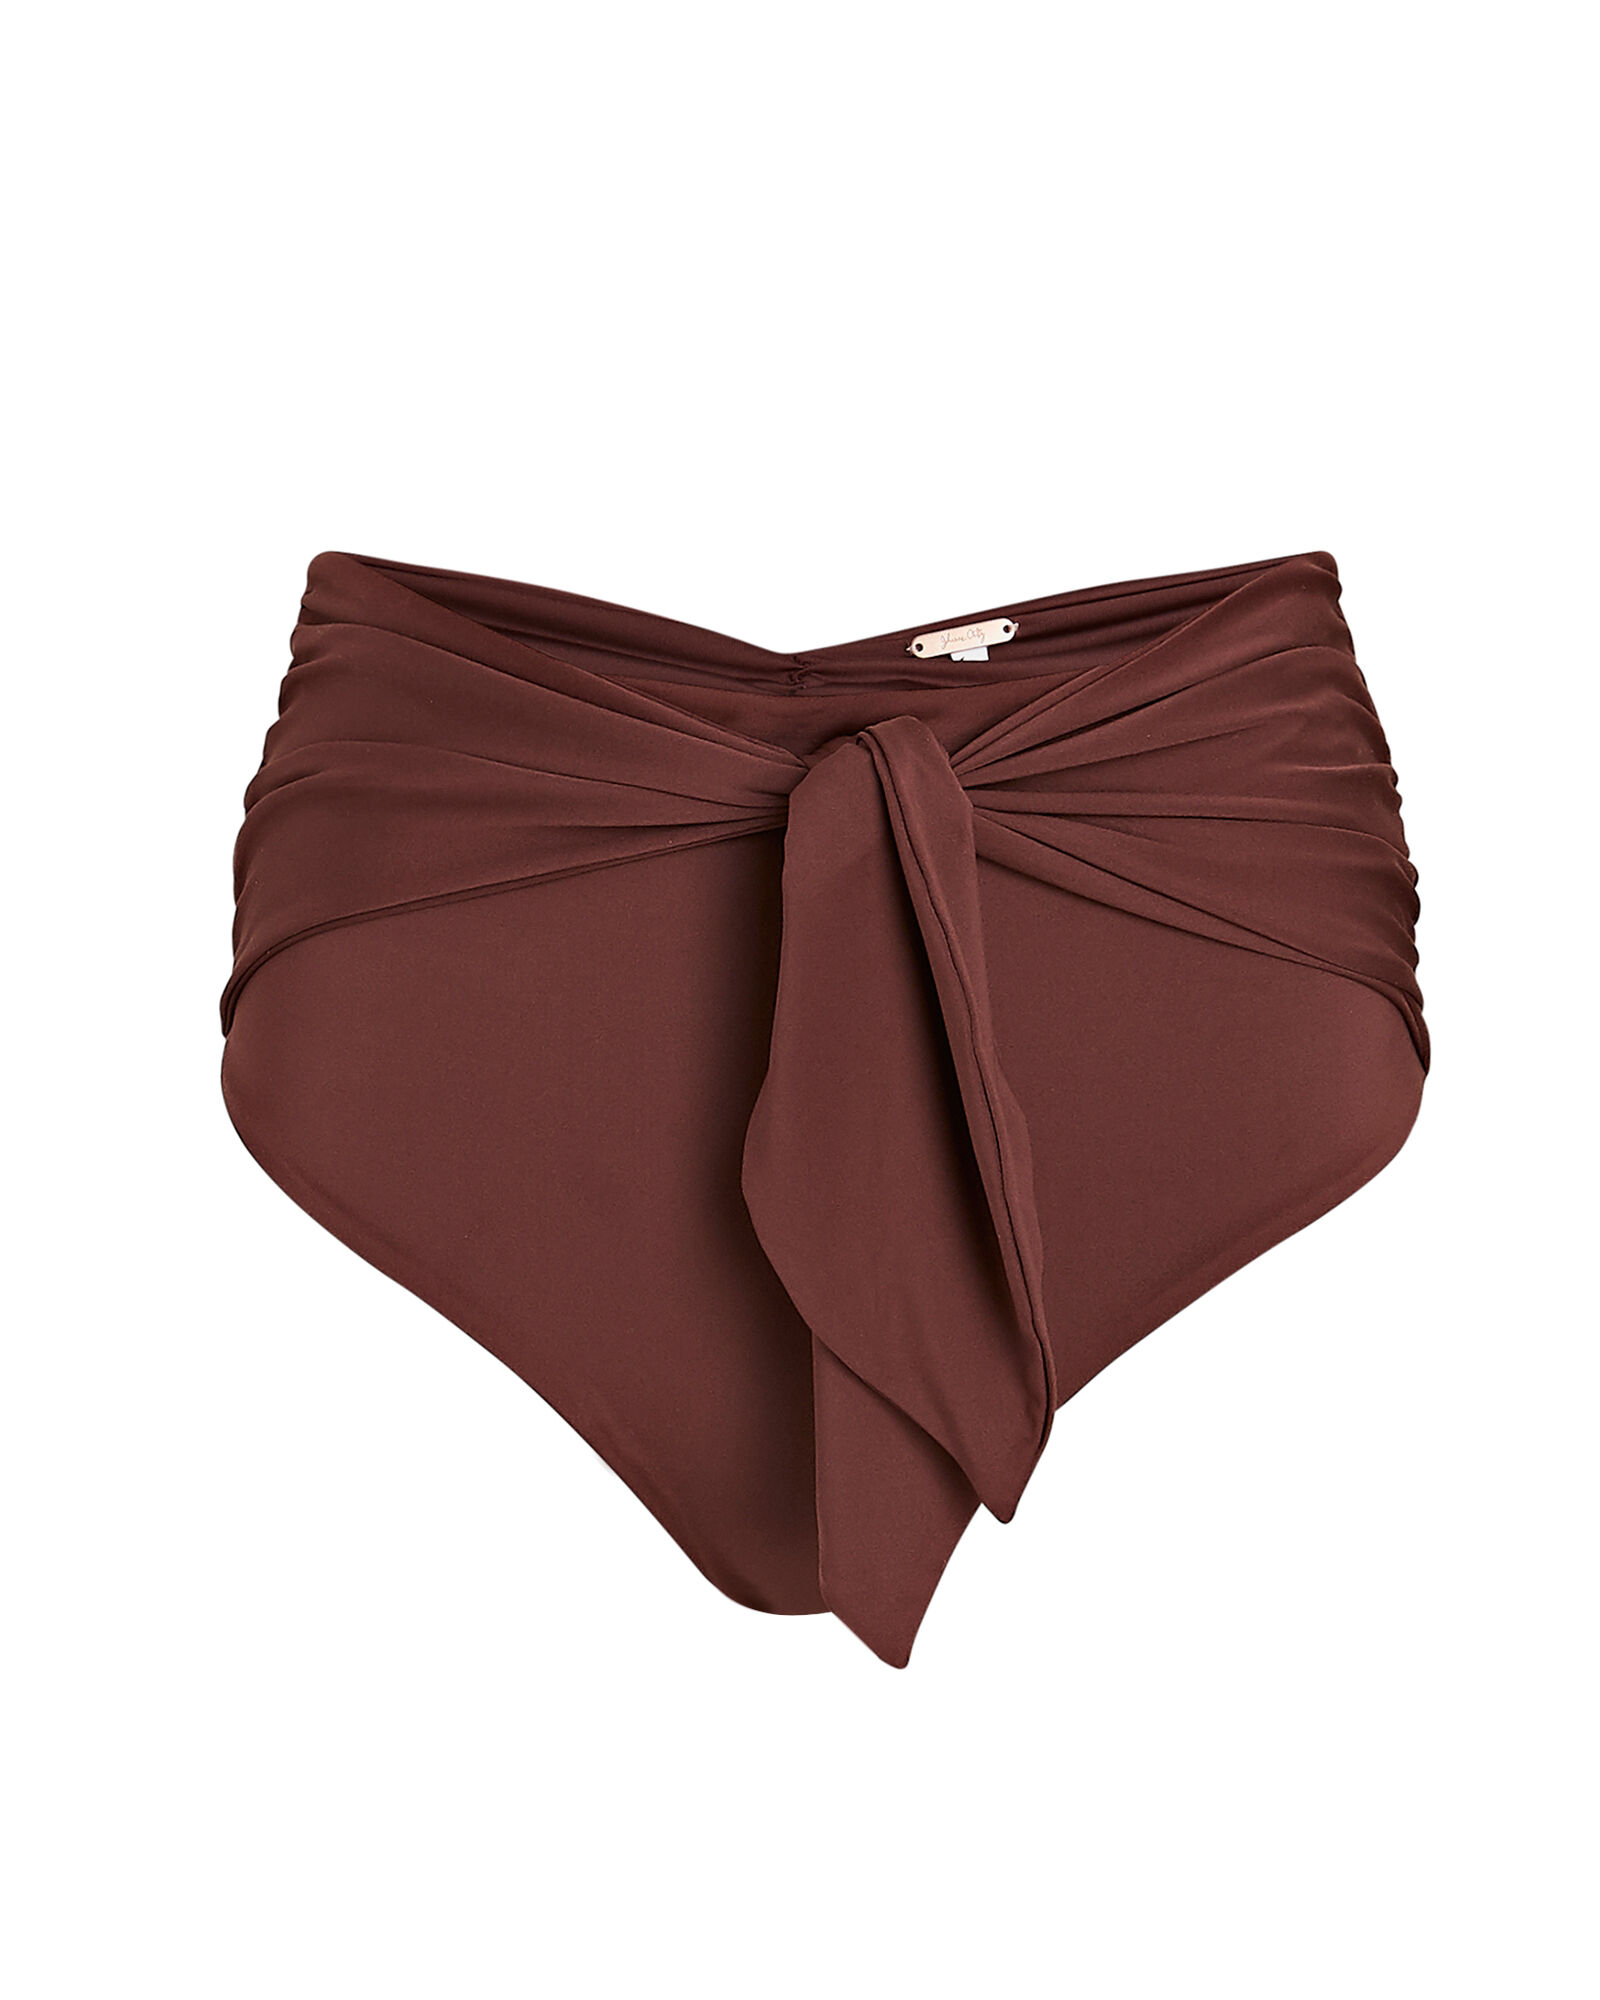 Farewell Bikini Bottoms, BROWN, hi-res